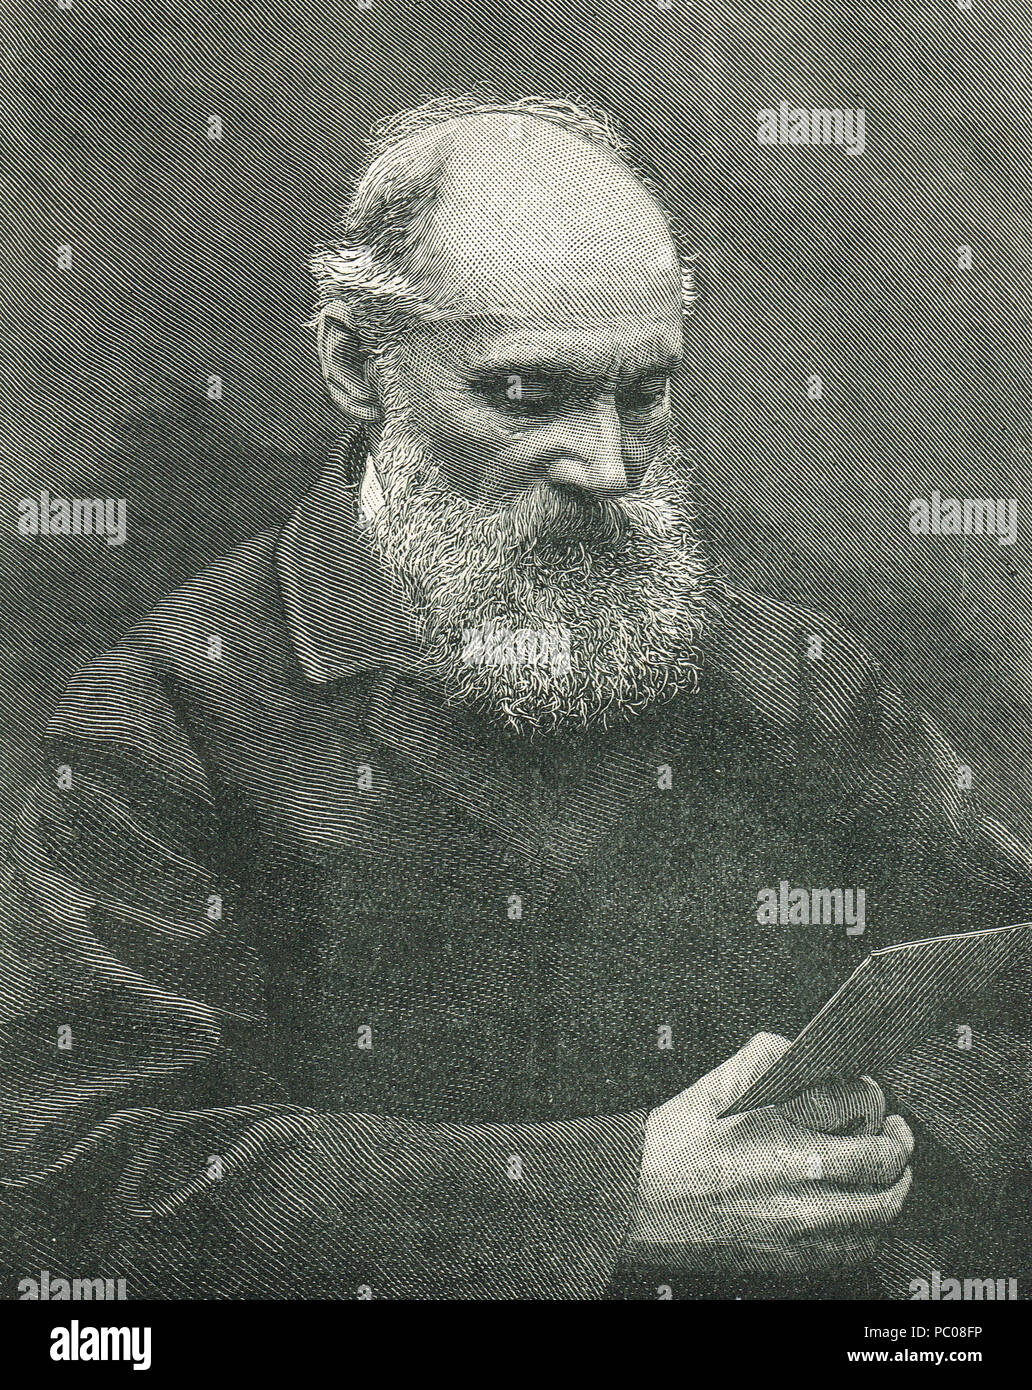 William Thomson, 1st Baron Kelvin, Scots-Irish mathematical physicist - Stock Image